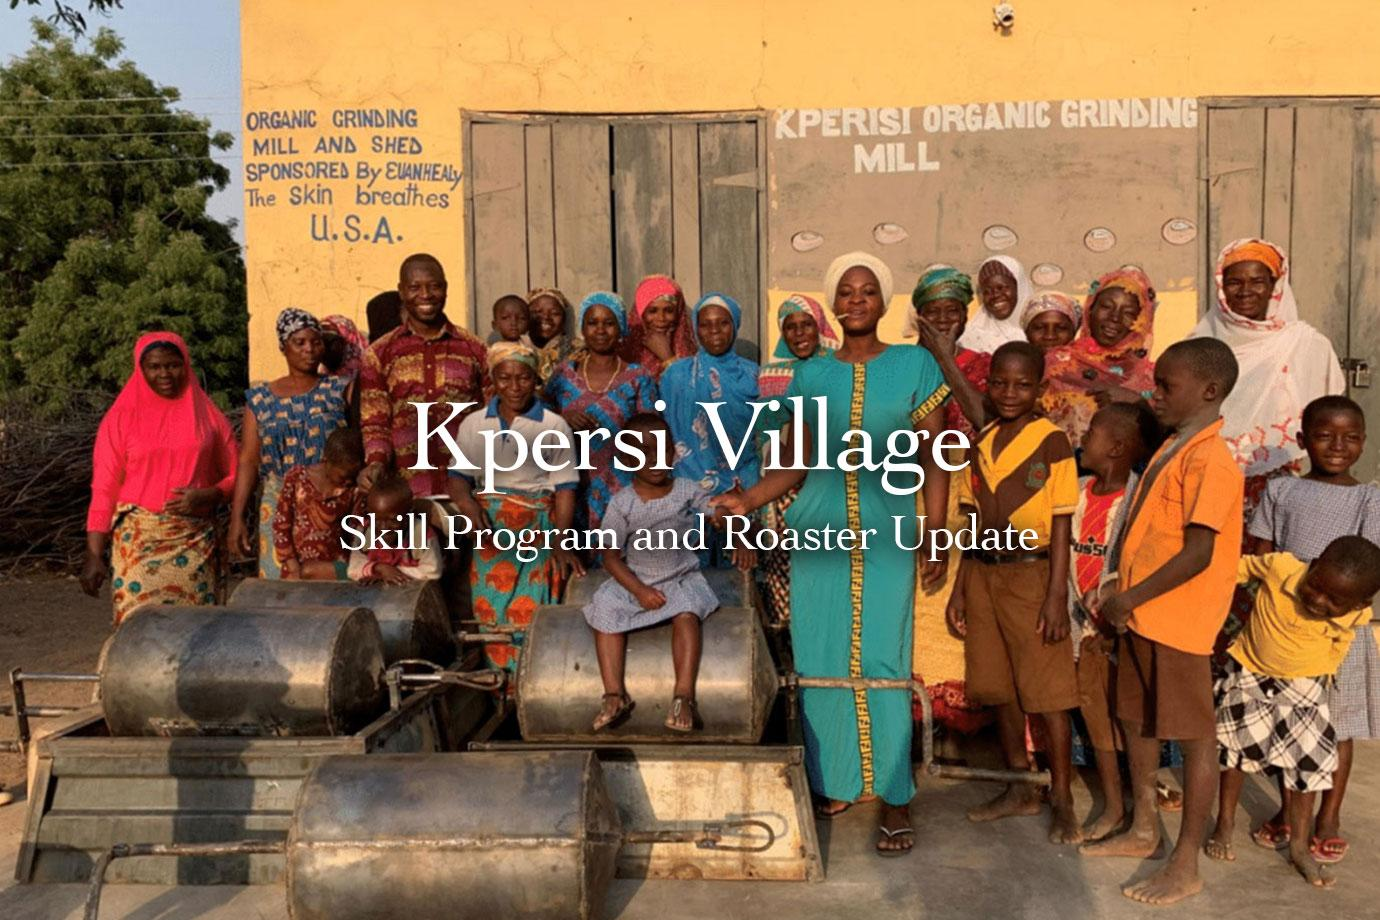 Kpersi Village   Skill Program and Roaster Update